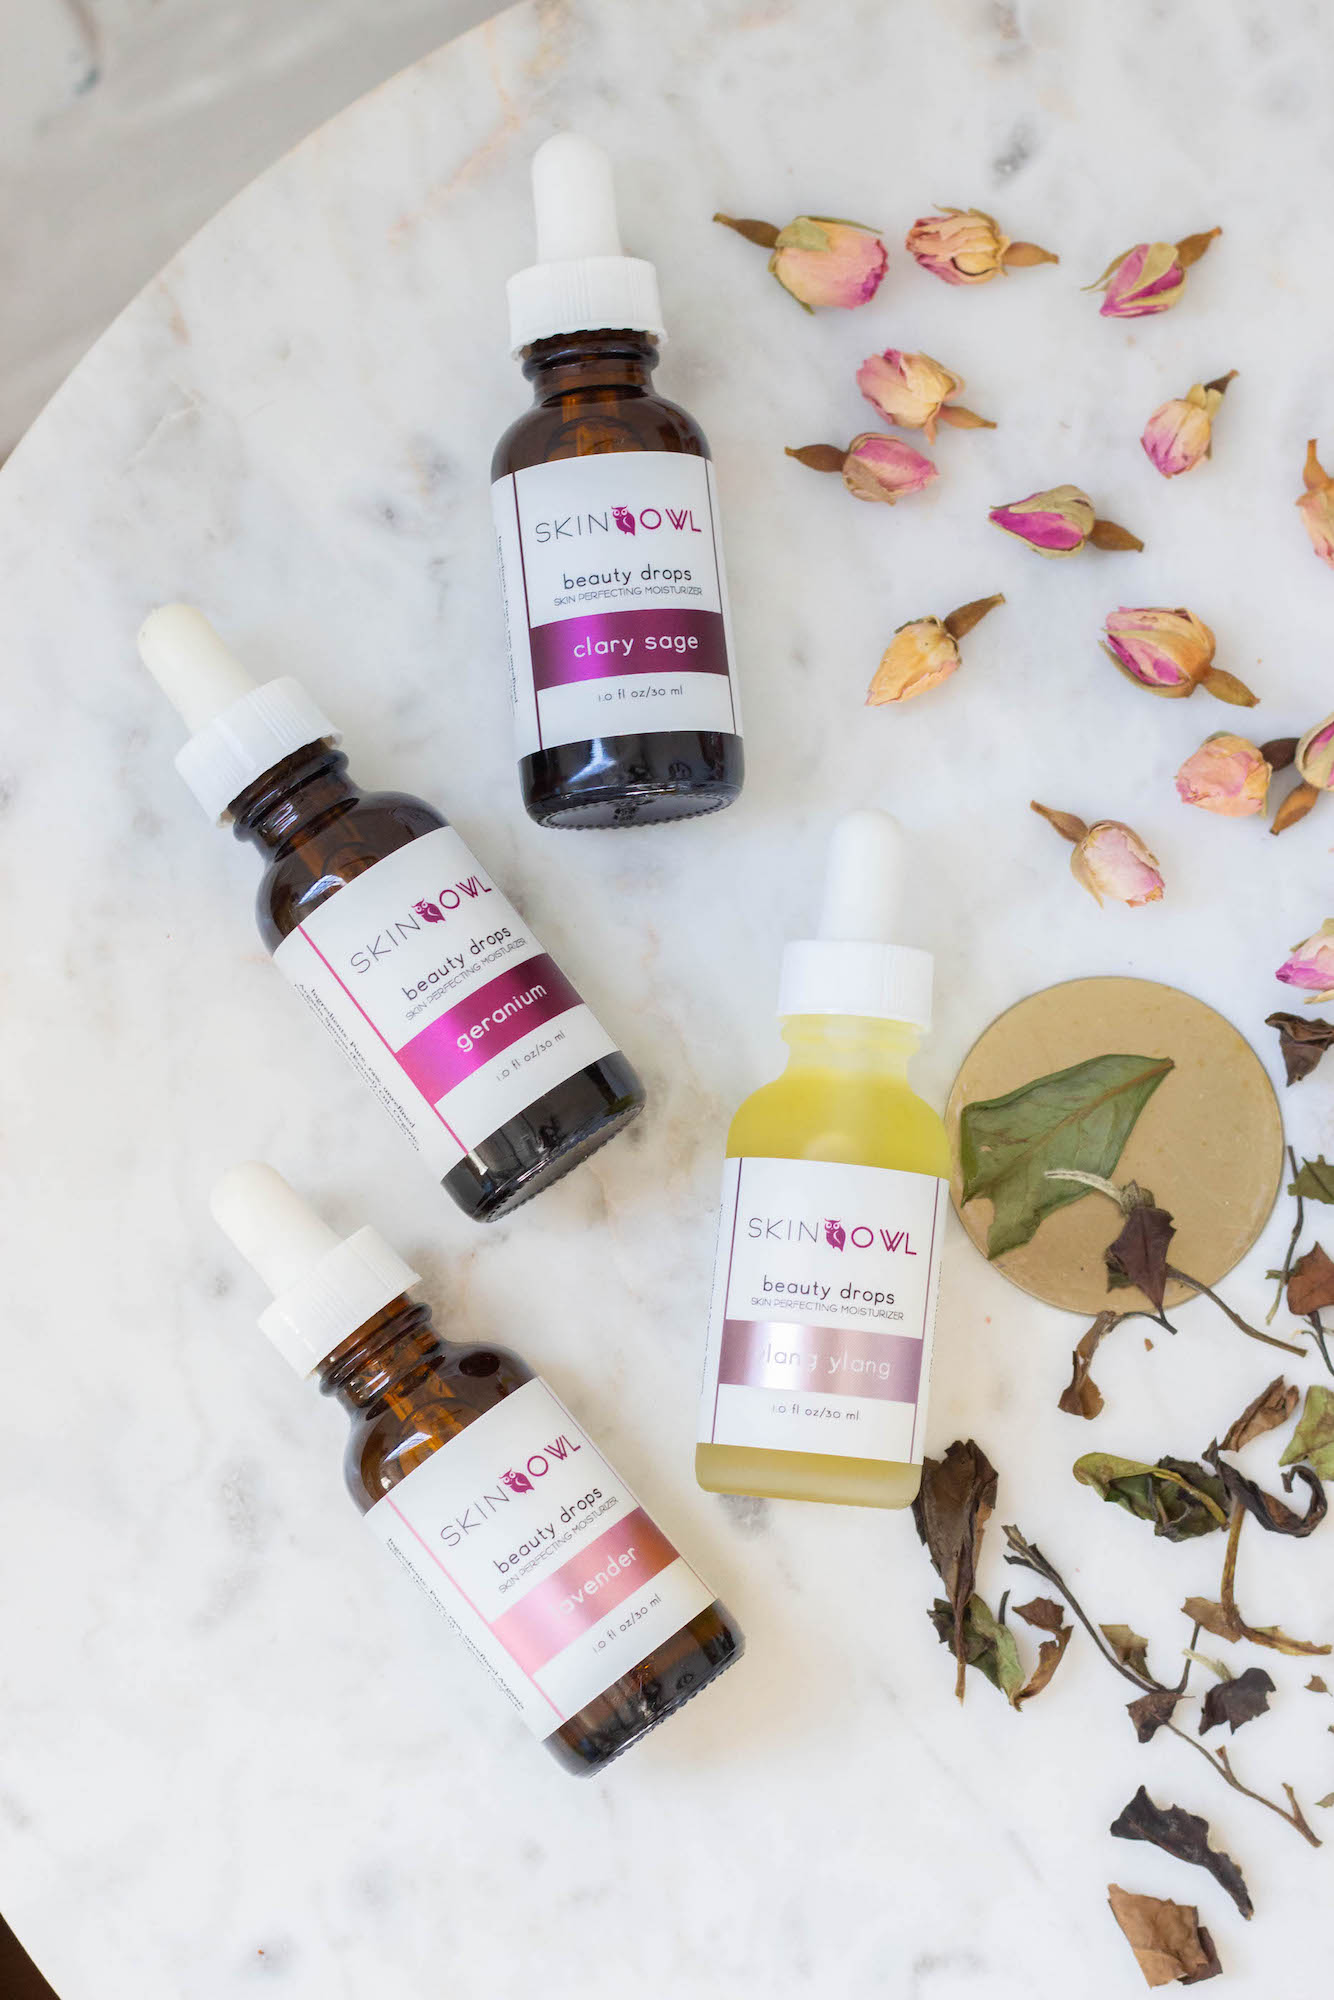 Skin Solutions: Bump Up Your Beauty Drops for Winter Weather